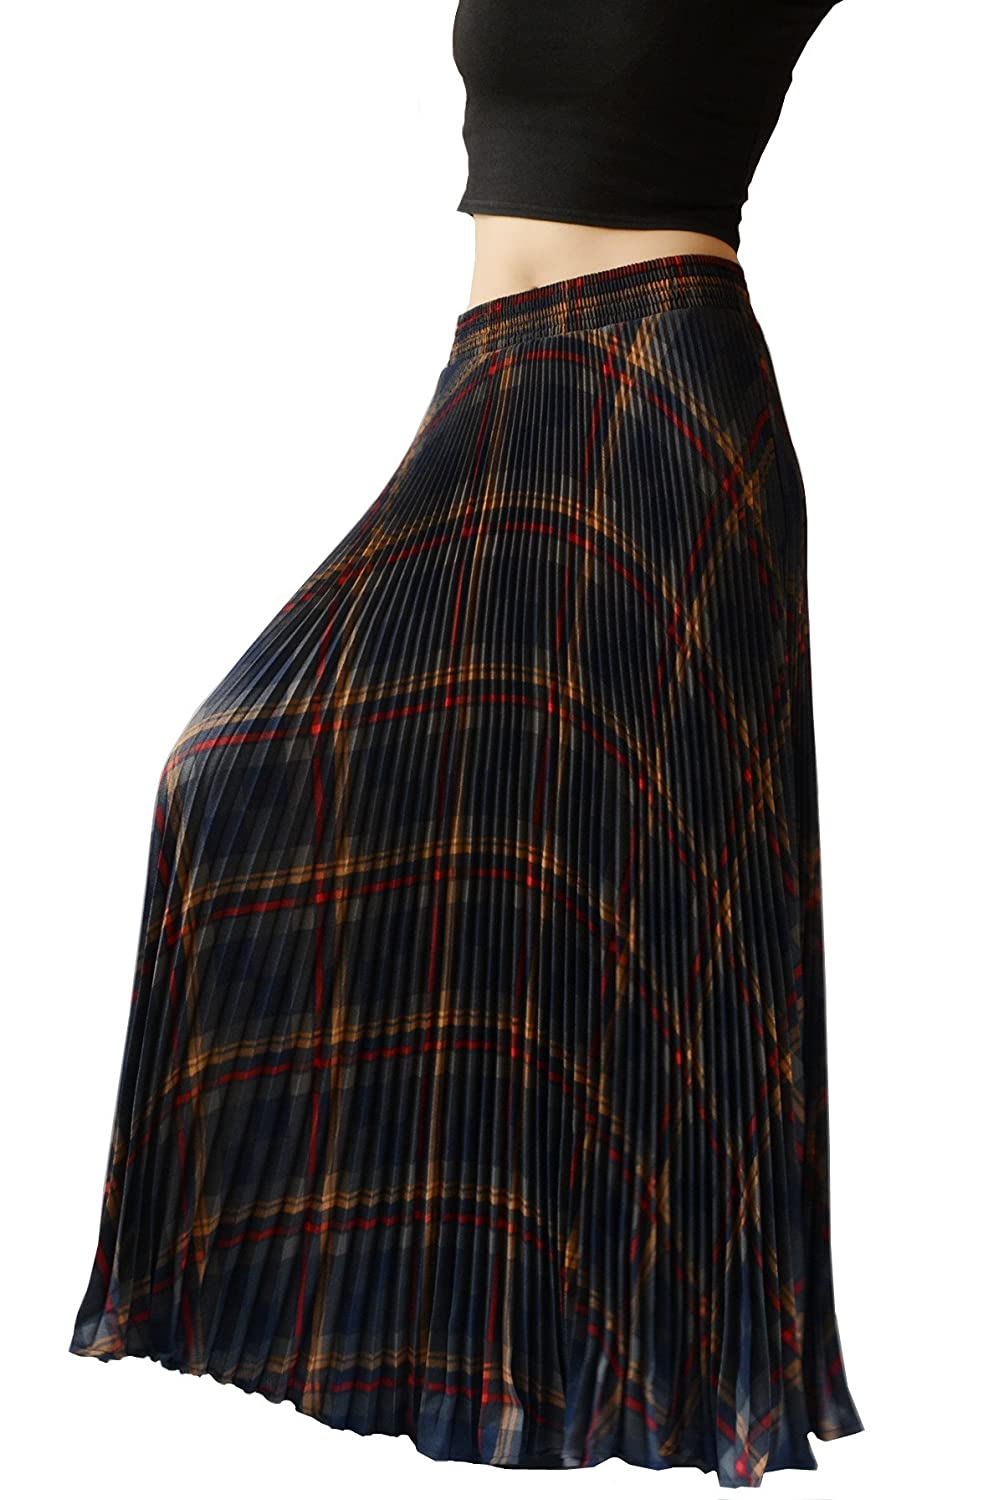 YSJ Womens Plaid Long Maxi Skirt - Bohemian Chiffon 360 Sunray Pleated Full Skirts YSJ-YZQ156